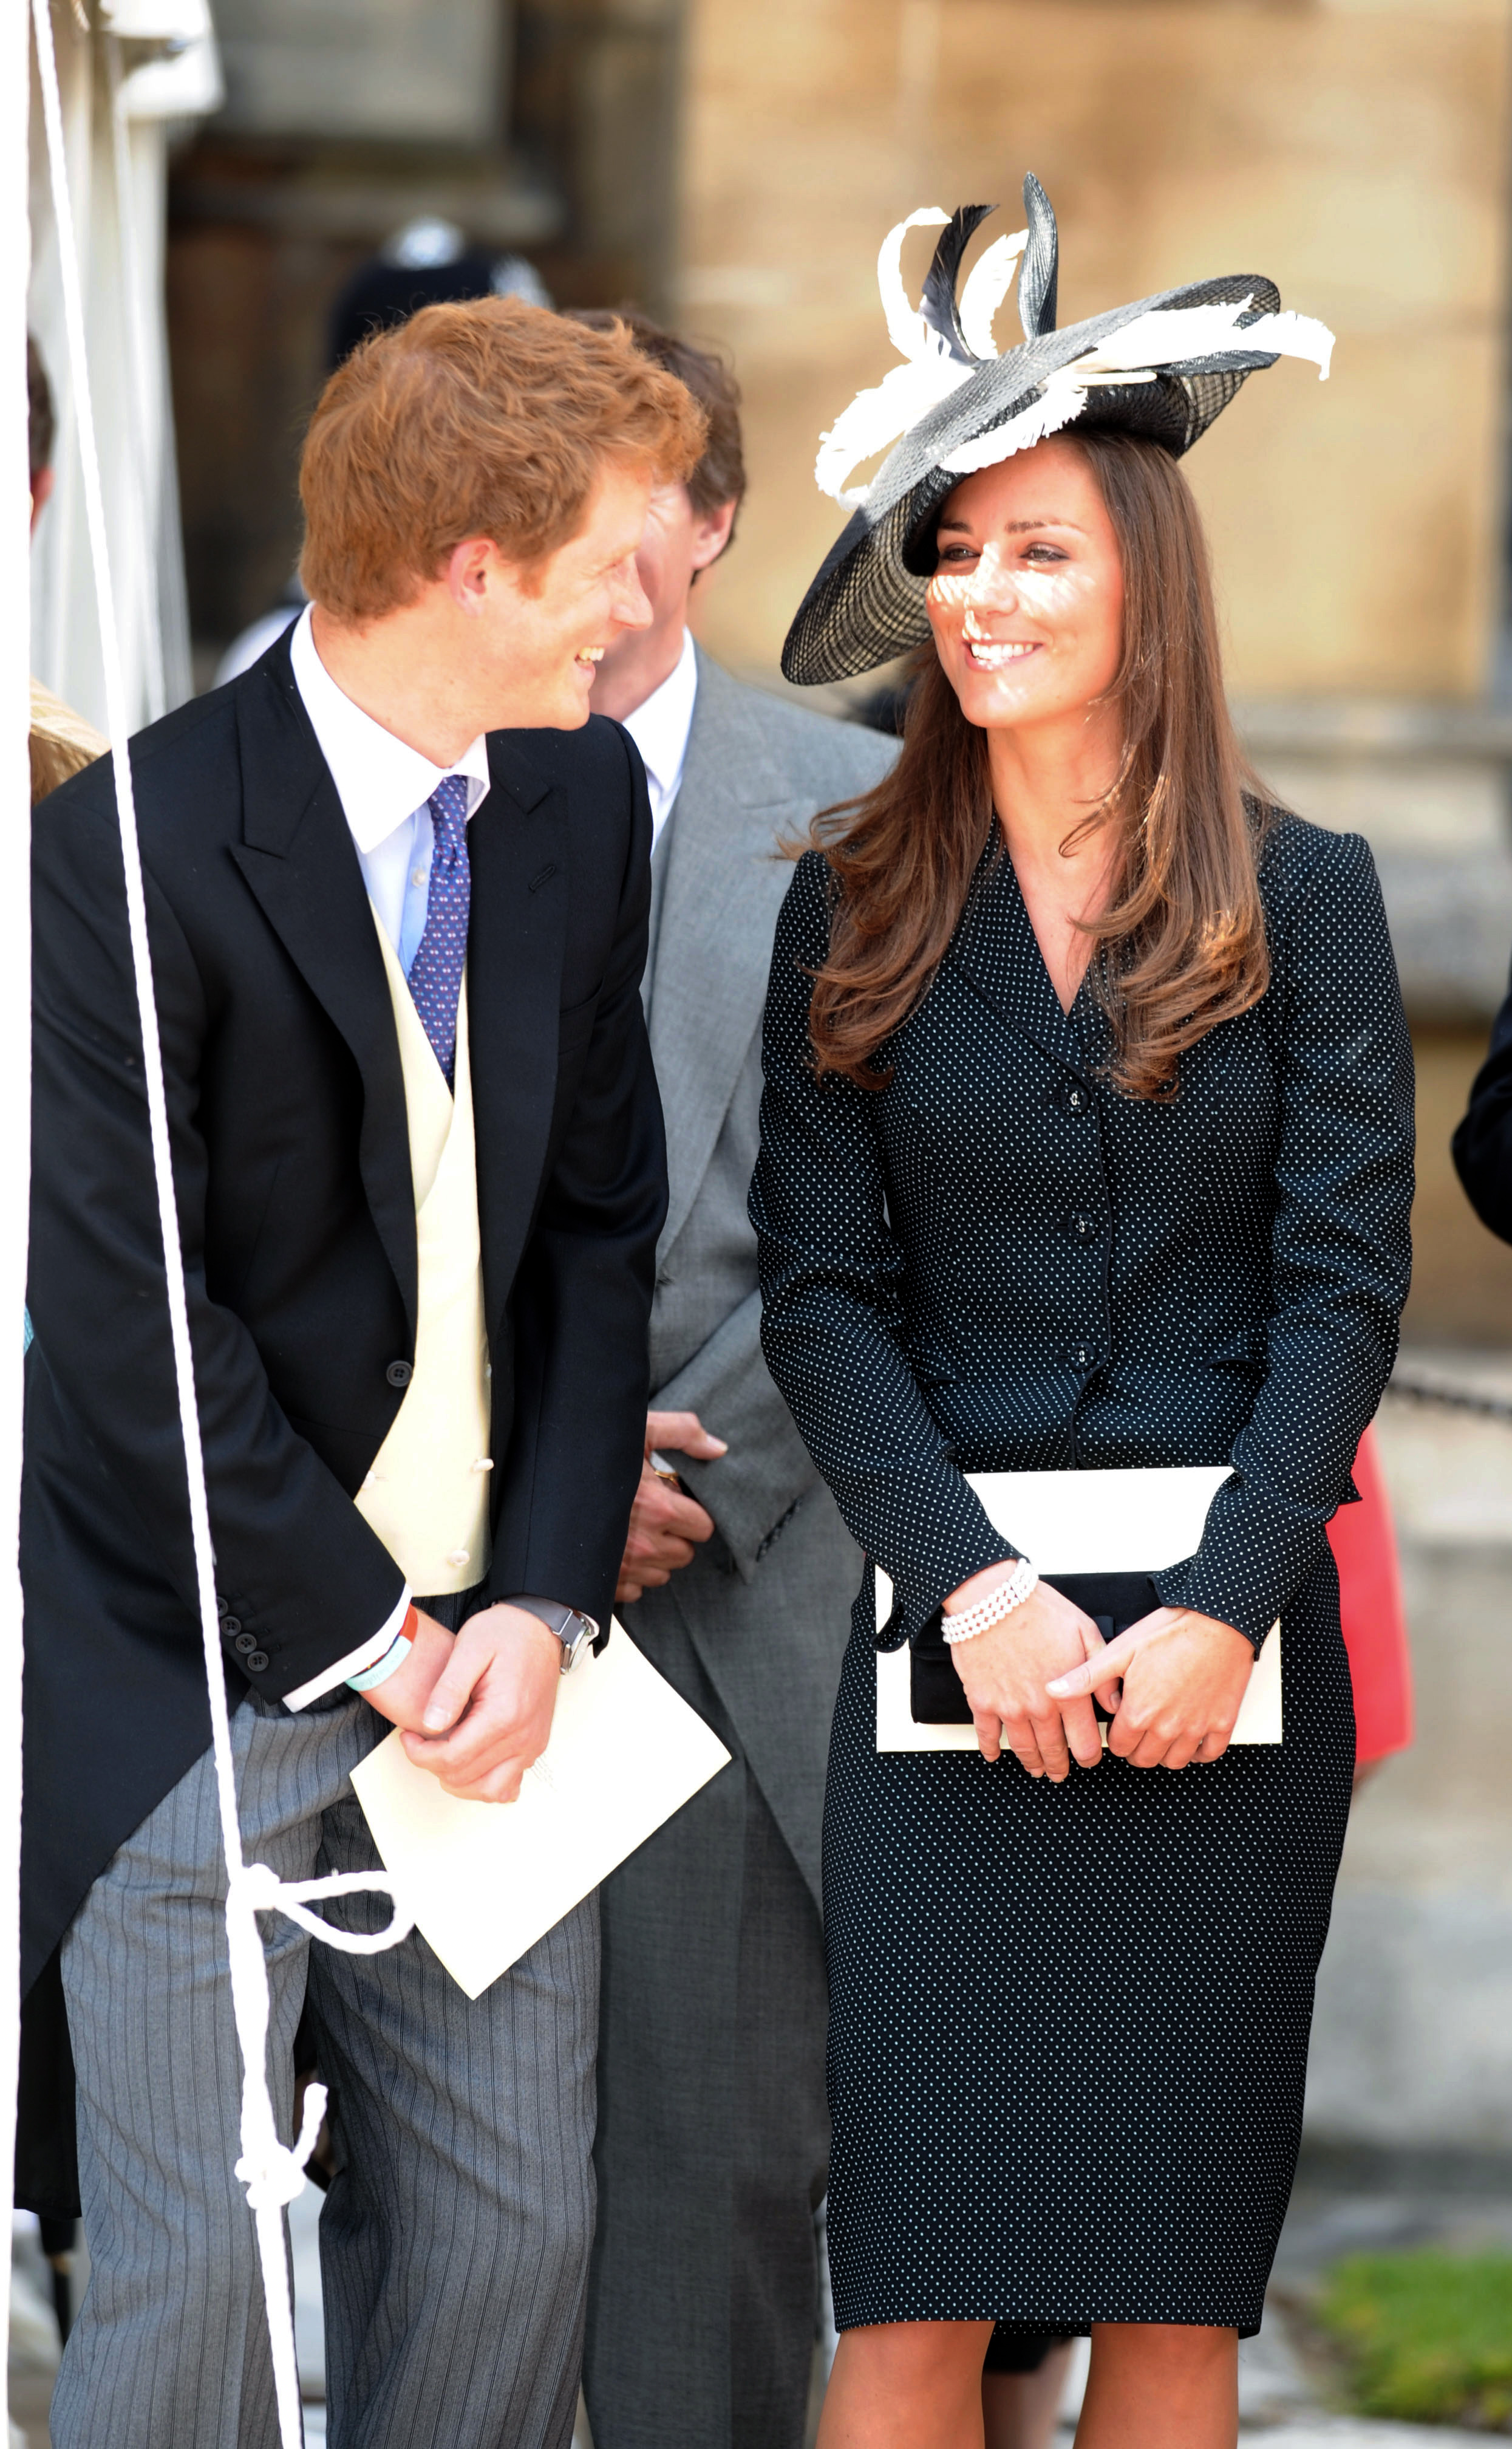 <strong>Hanging with Harry</strong>                                   The future royal picked a polka-dot pattern for the Order of the Garter Service at St. George's Chapel on June 16, 2008.